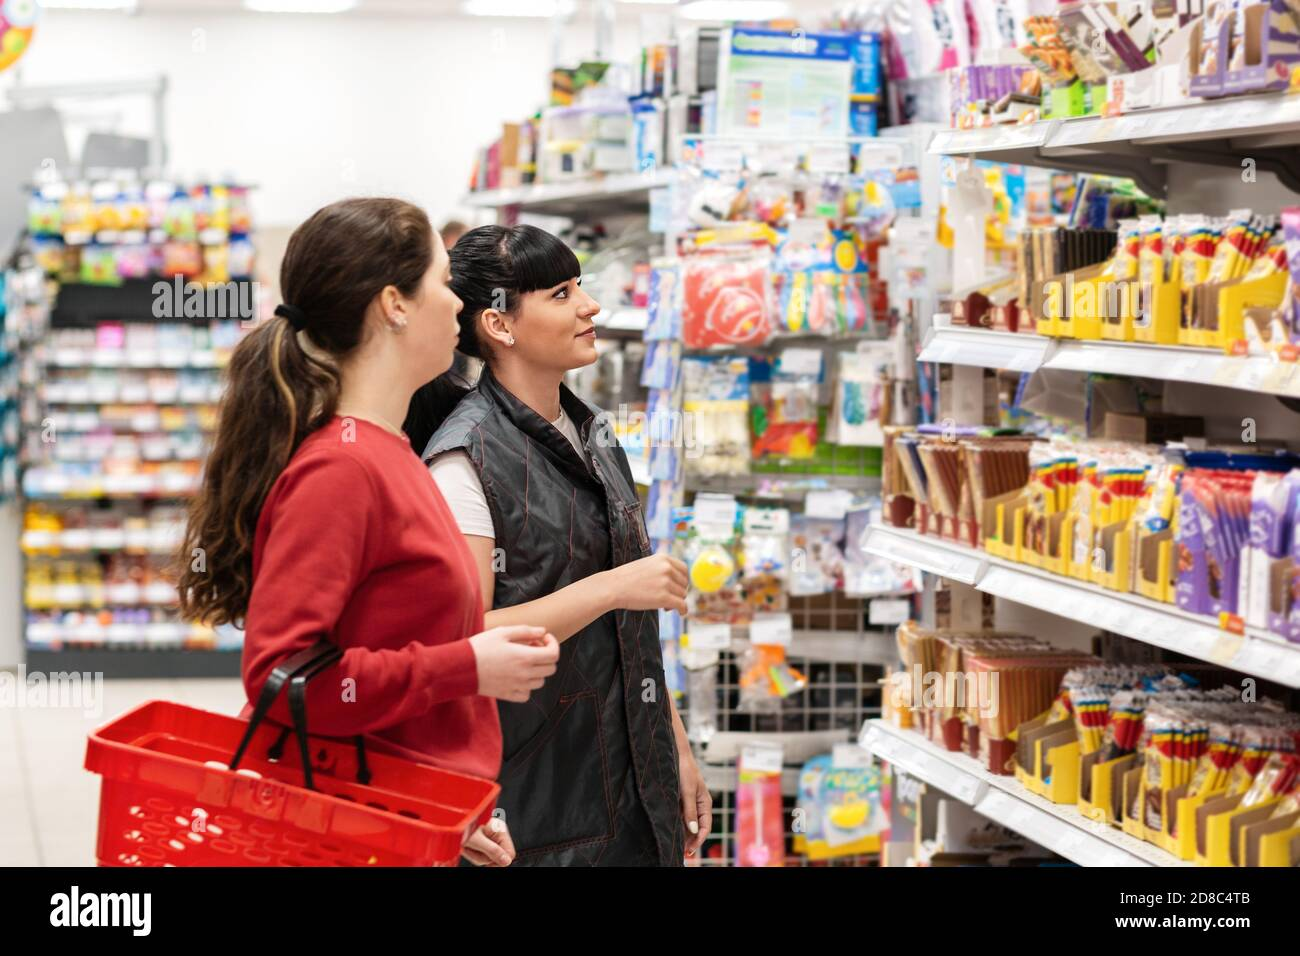 Consumer Product Manager High Resolution Stock Photography And Images Alamy